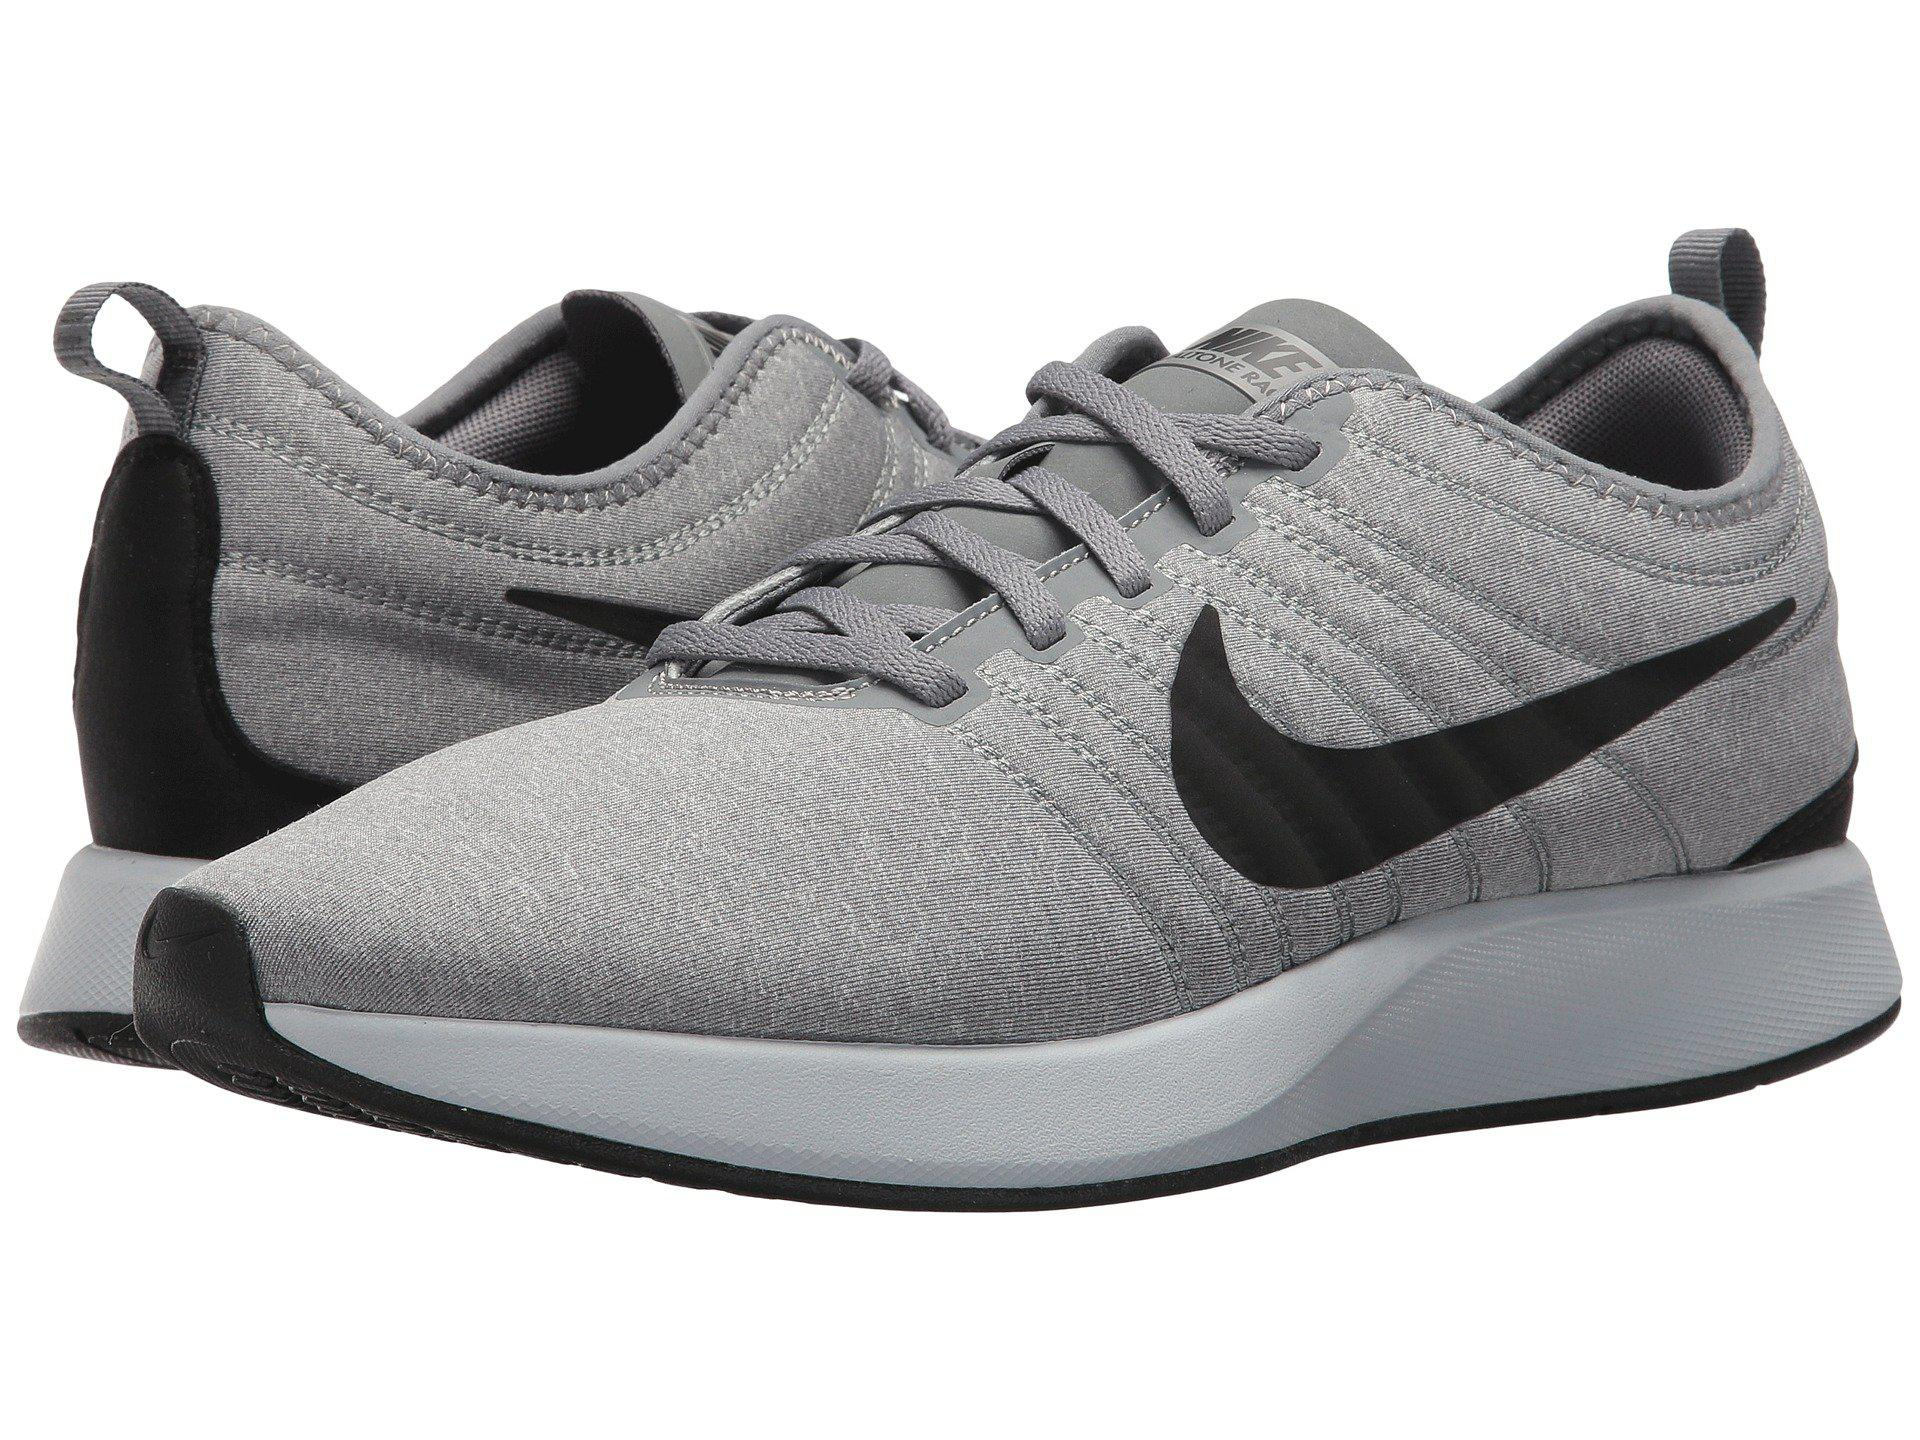 0a52817cec41 Lyst - Nike Dualtone Racer in Gray for Men - Save 37%